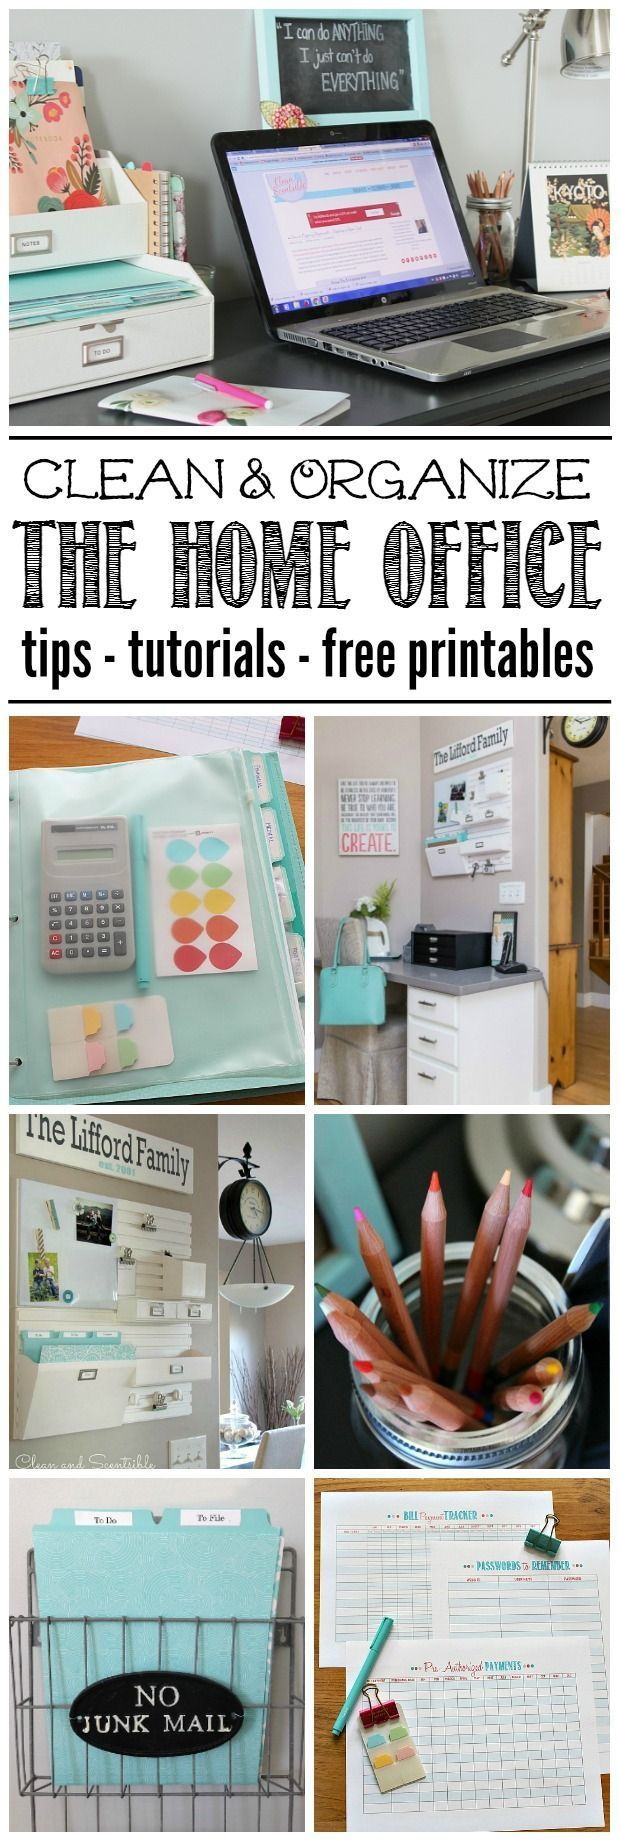 Everything you need to get your home office cleaned and organized! Lots of free printables included - part of The Household Organization Diet.